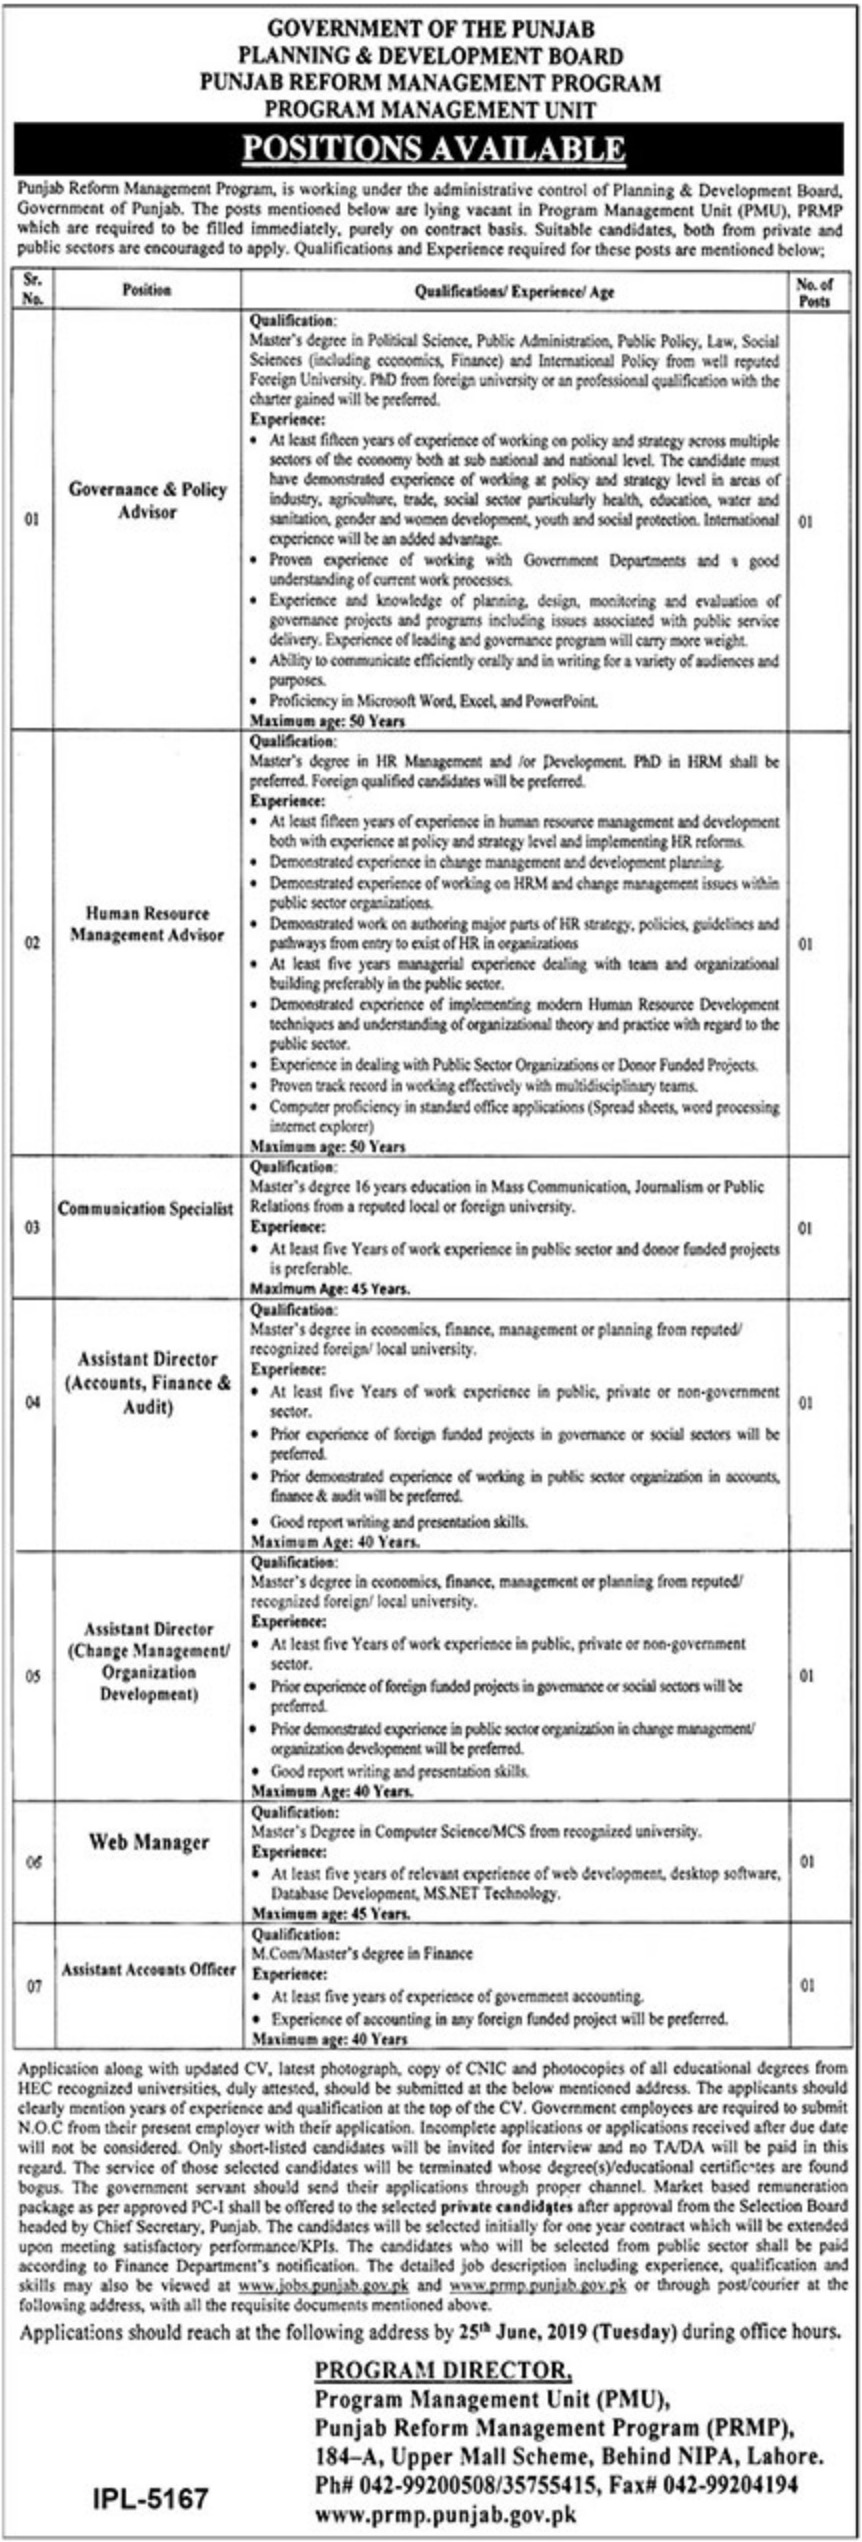 Planning & Development Board Jobs 2019 Government of Punjab